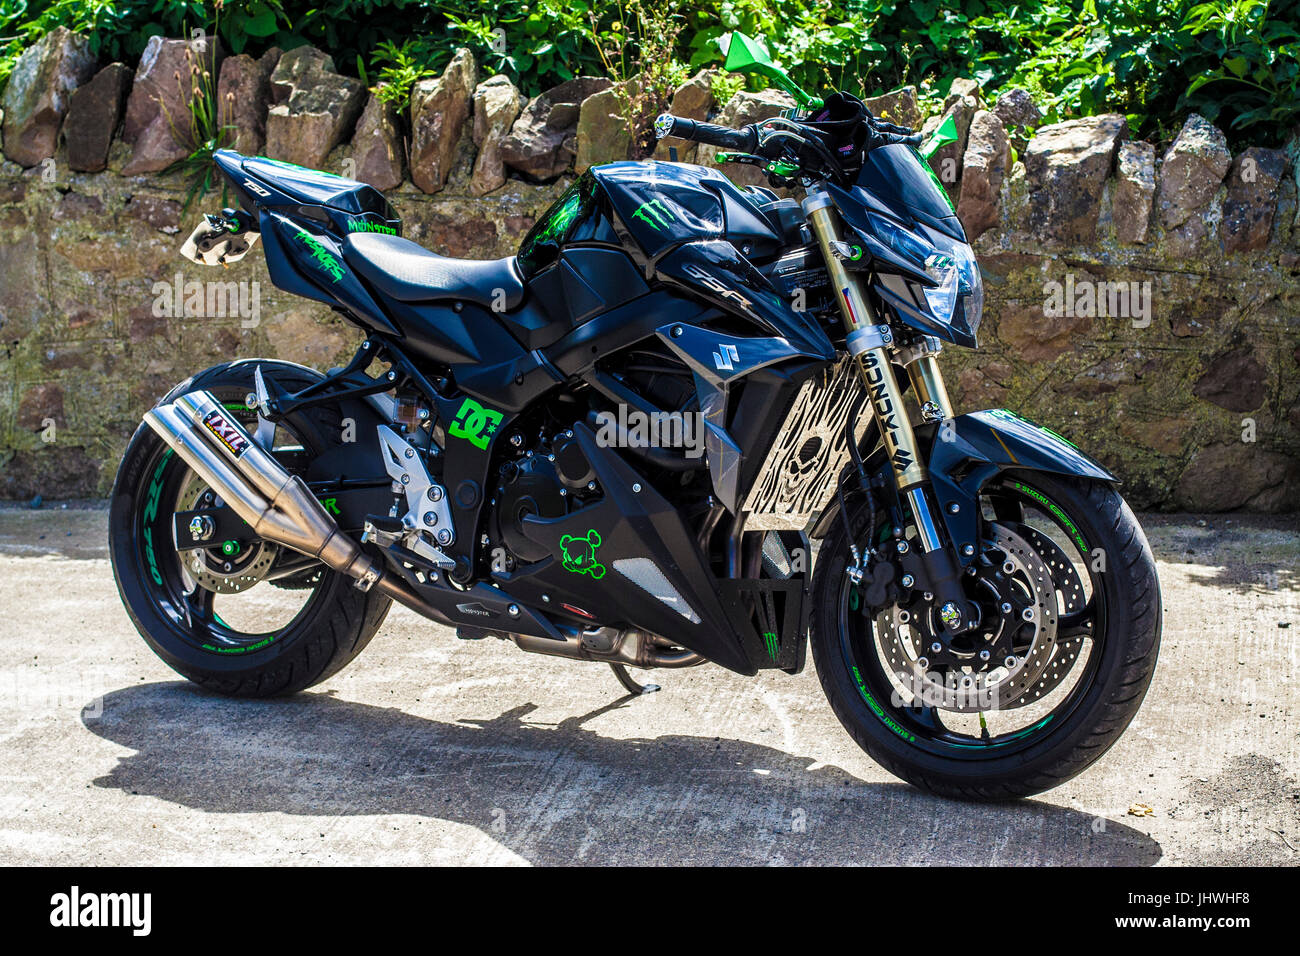 black silver and green suzuki motorcycle ixil - Stock Image